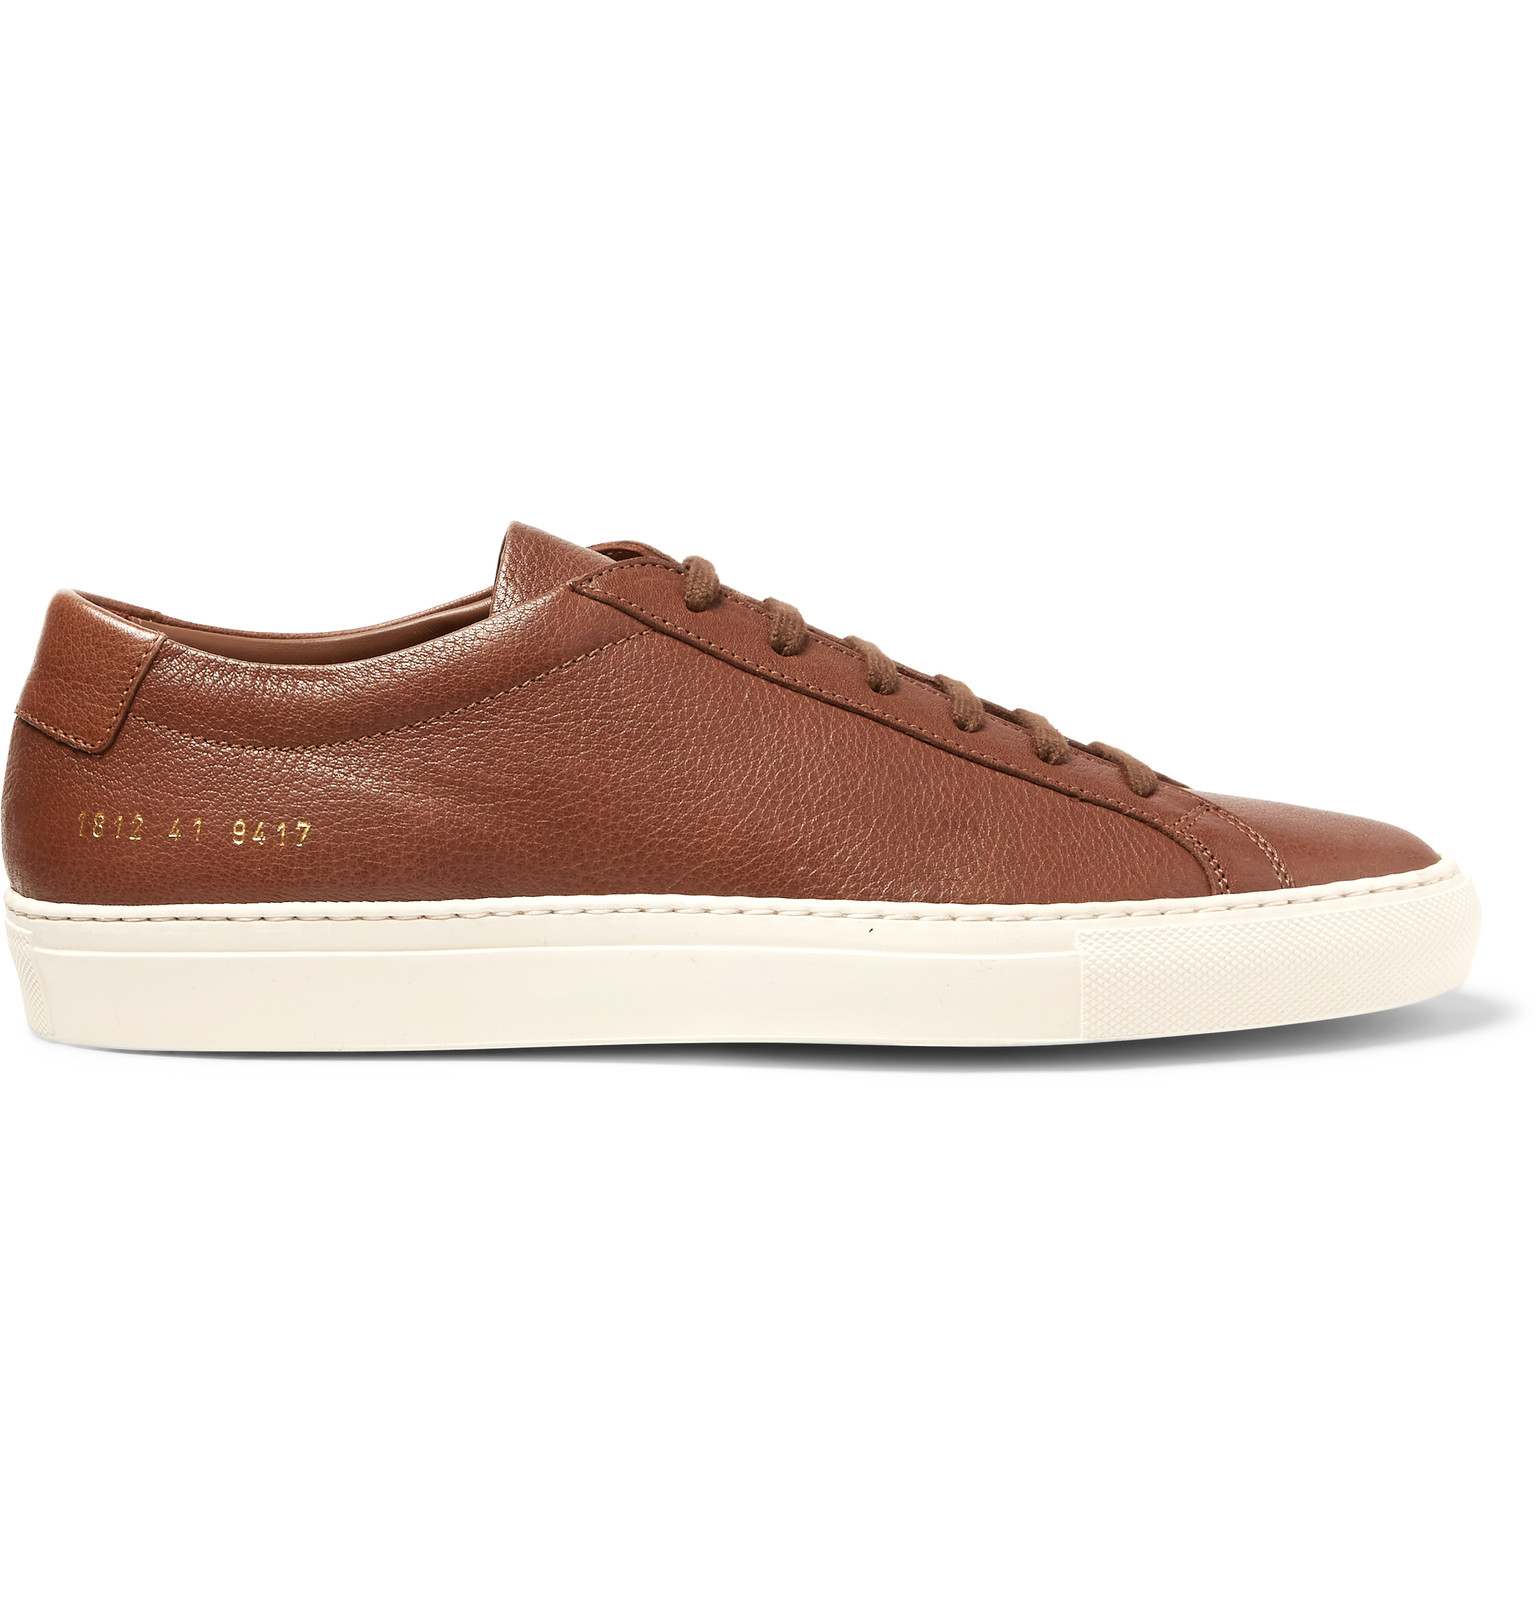 Common Projects Original Achilles Full Grain Leather